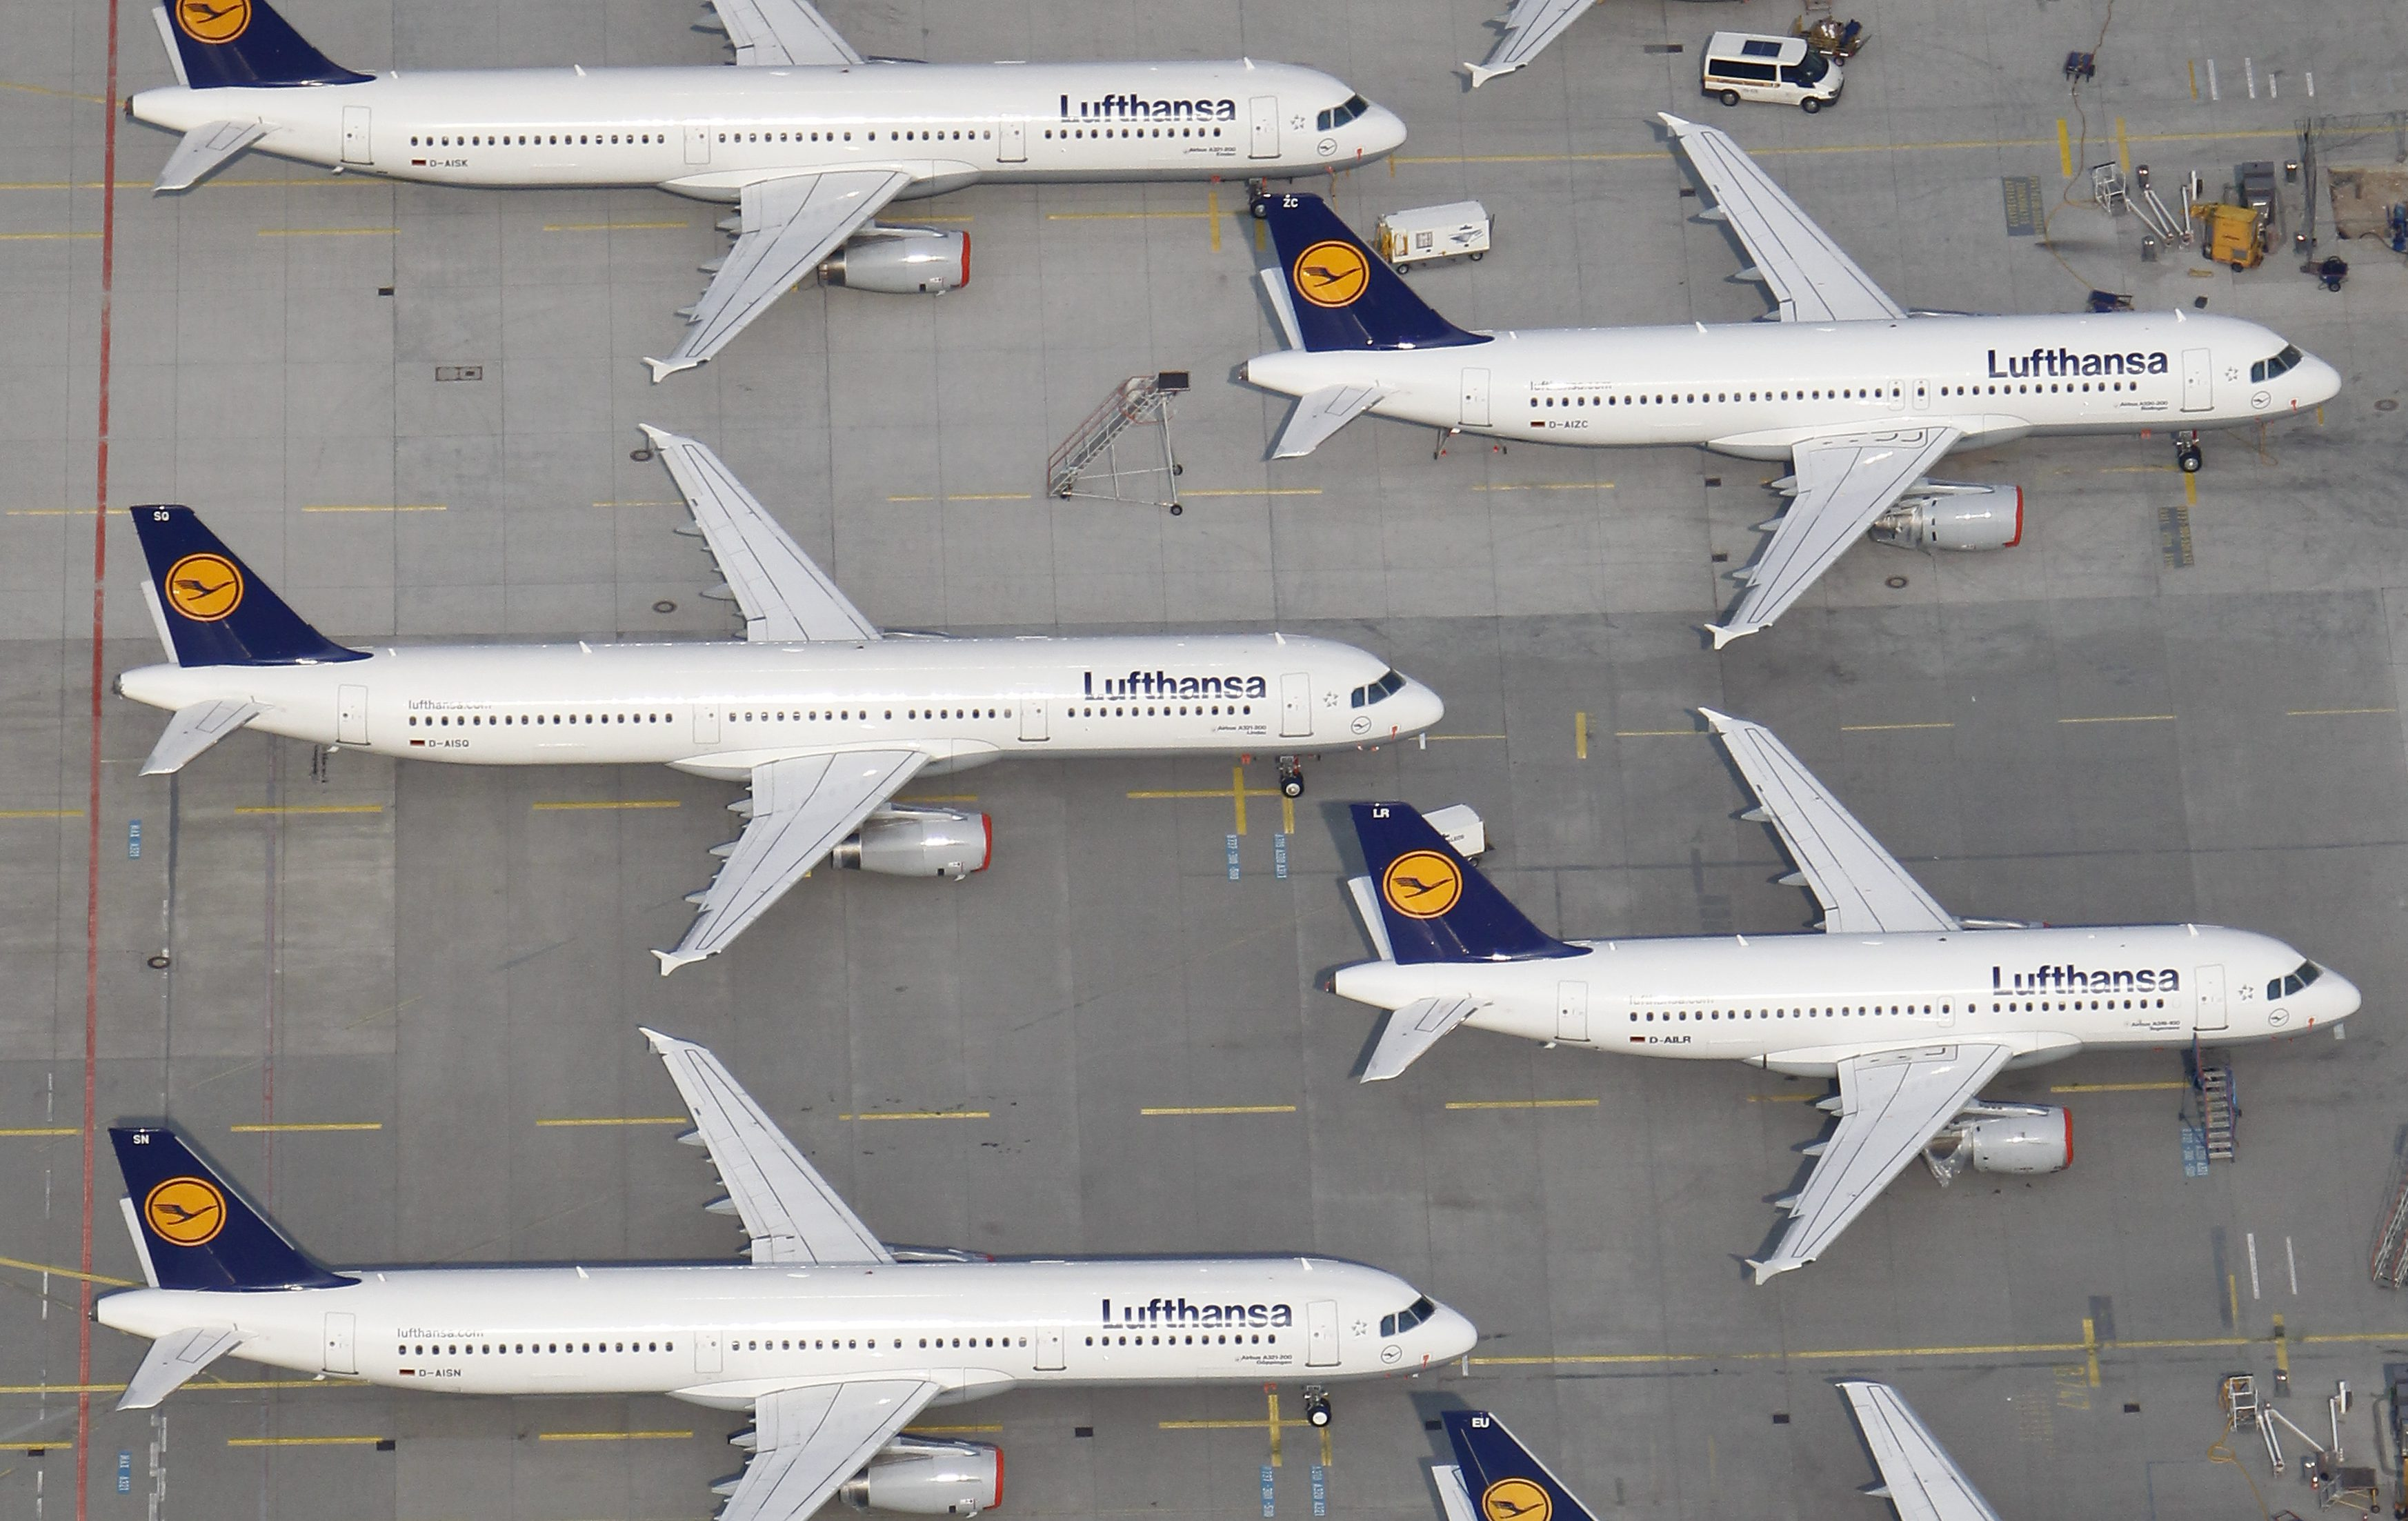 Lufthansa is renting seats on its airplanes on Airbnb — Quartz